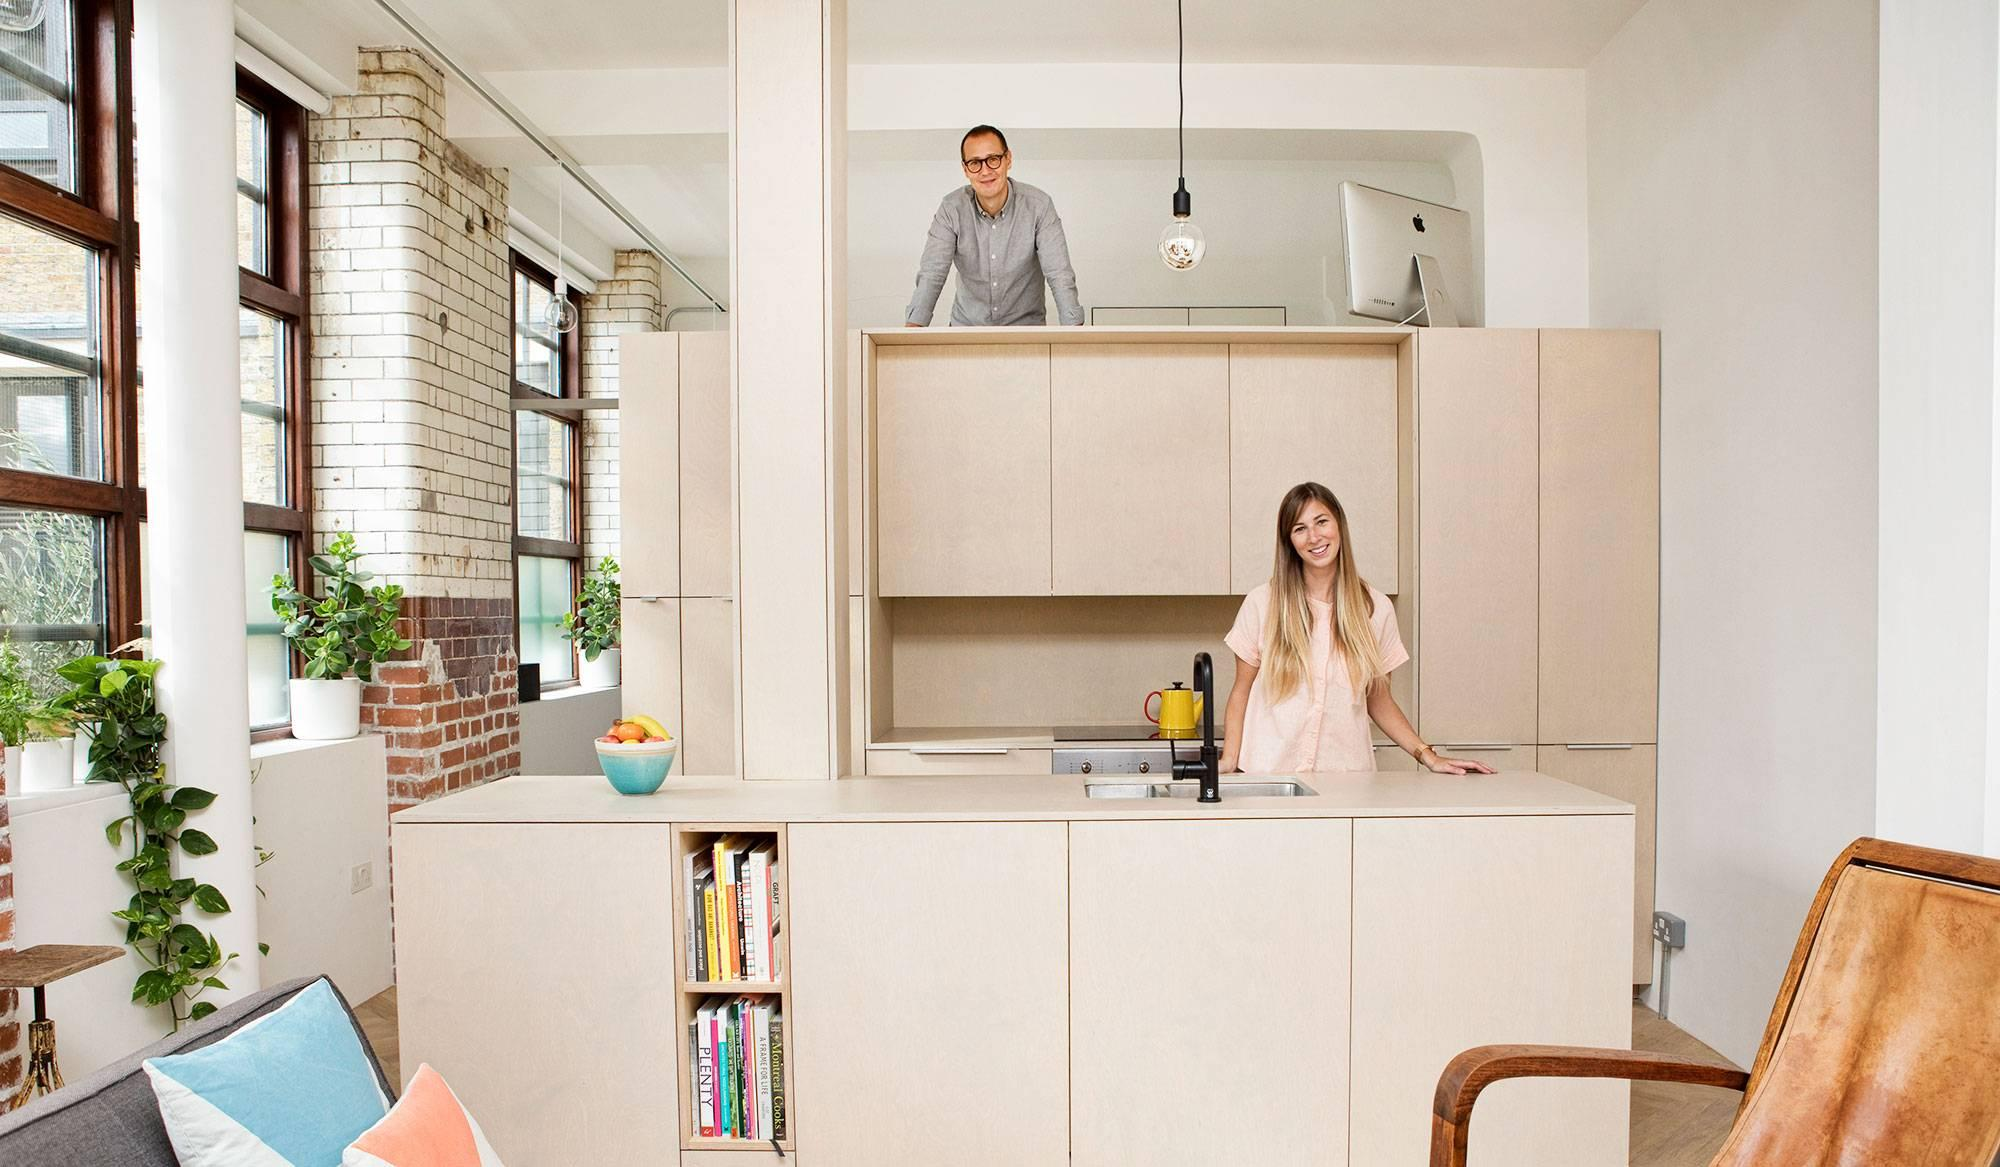 This Spacious London Micro Flat Could Be A Blueprint For Future